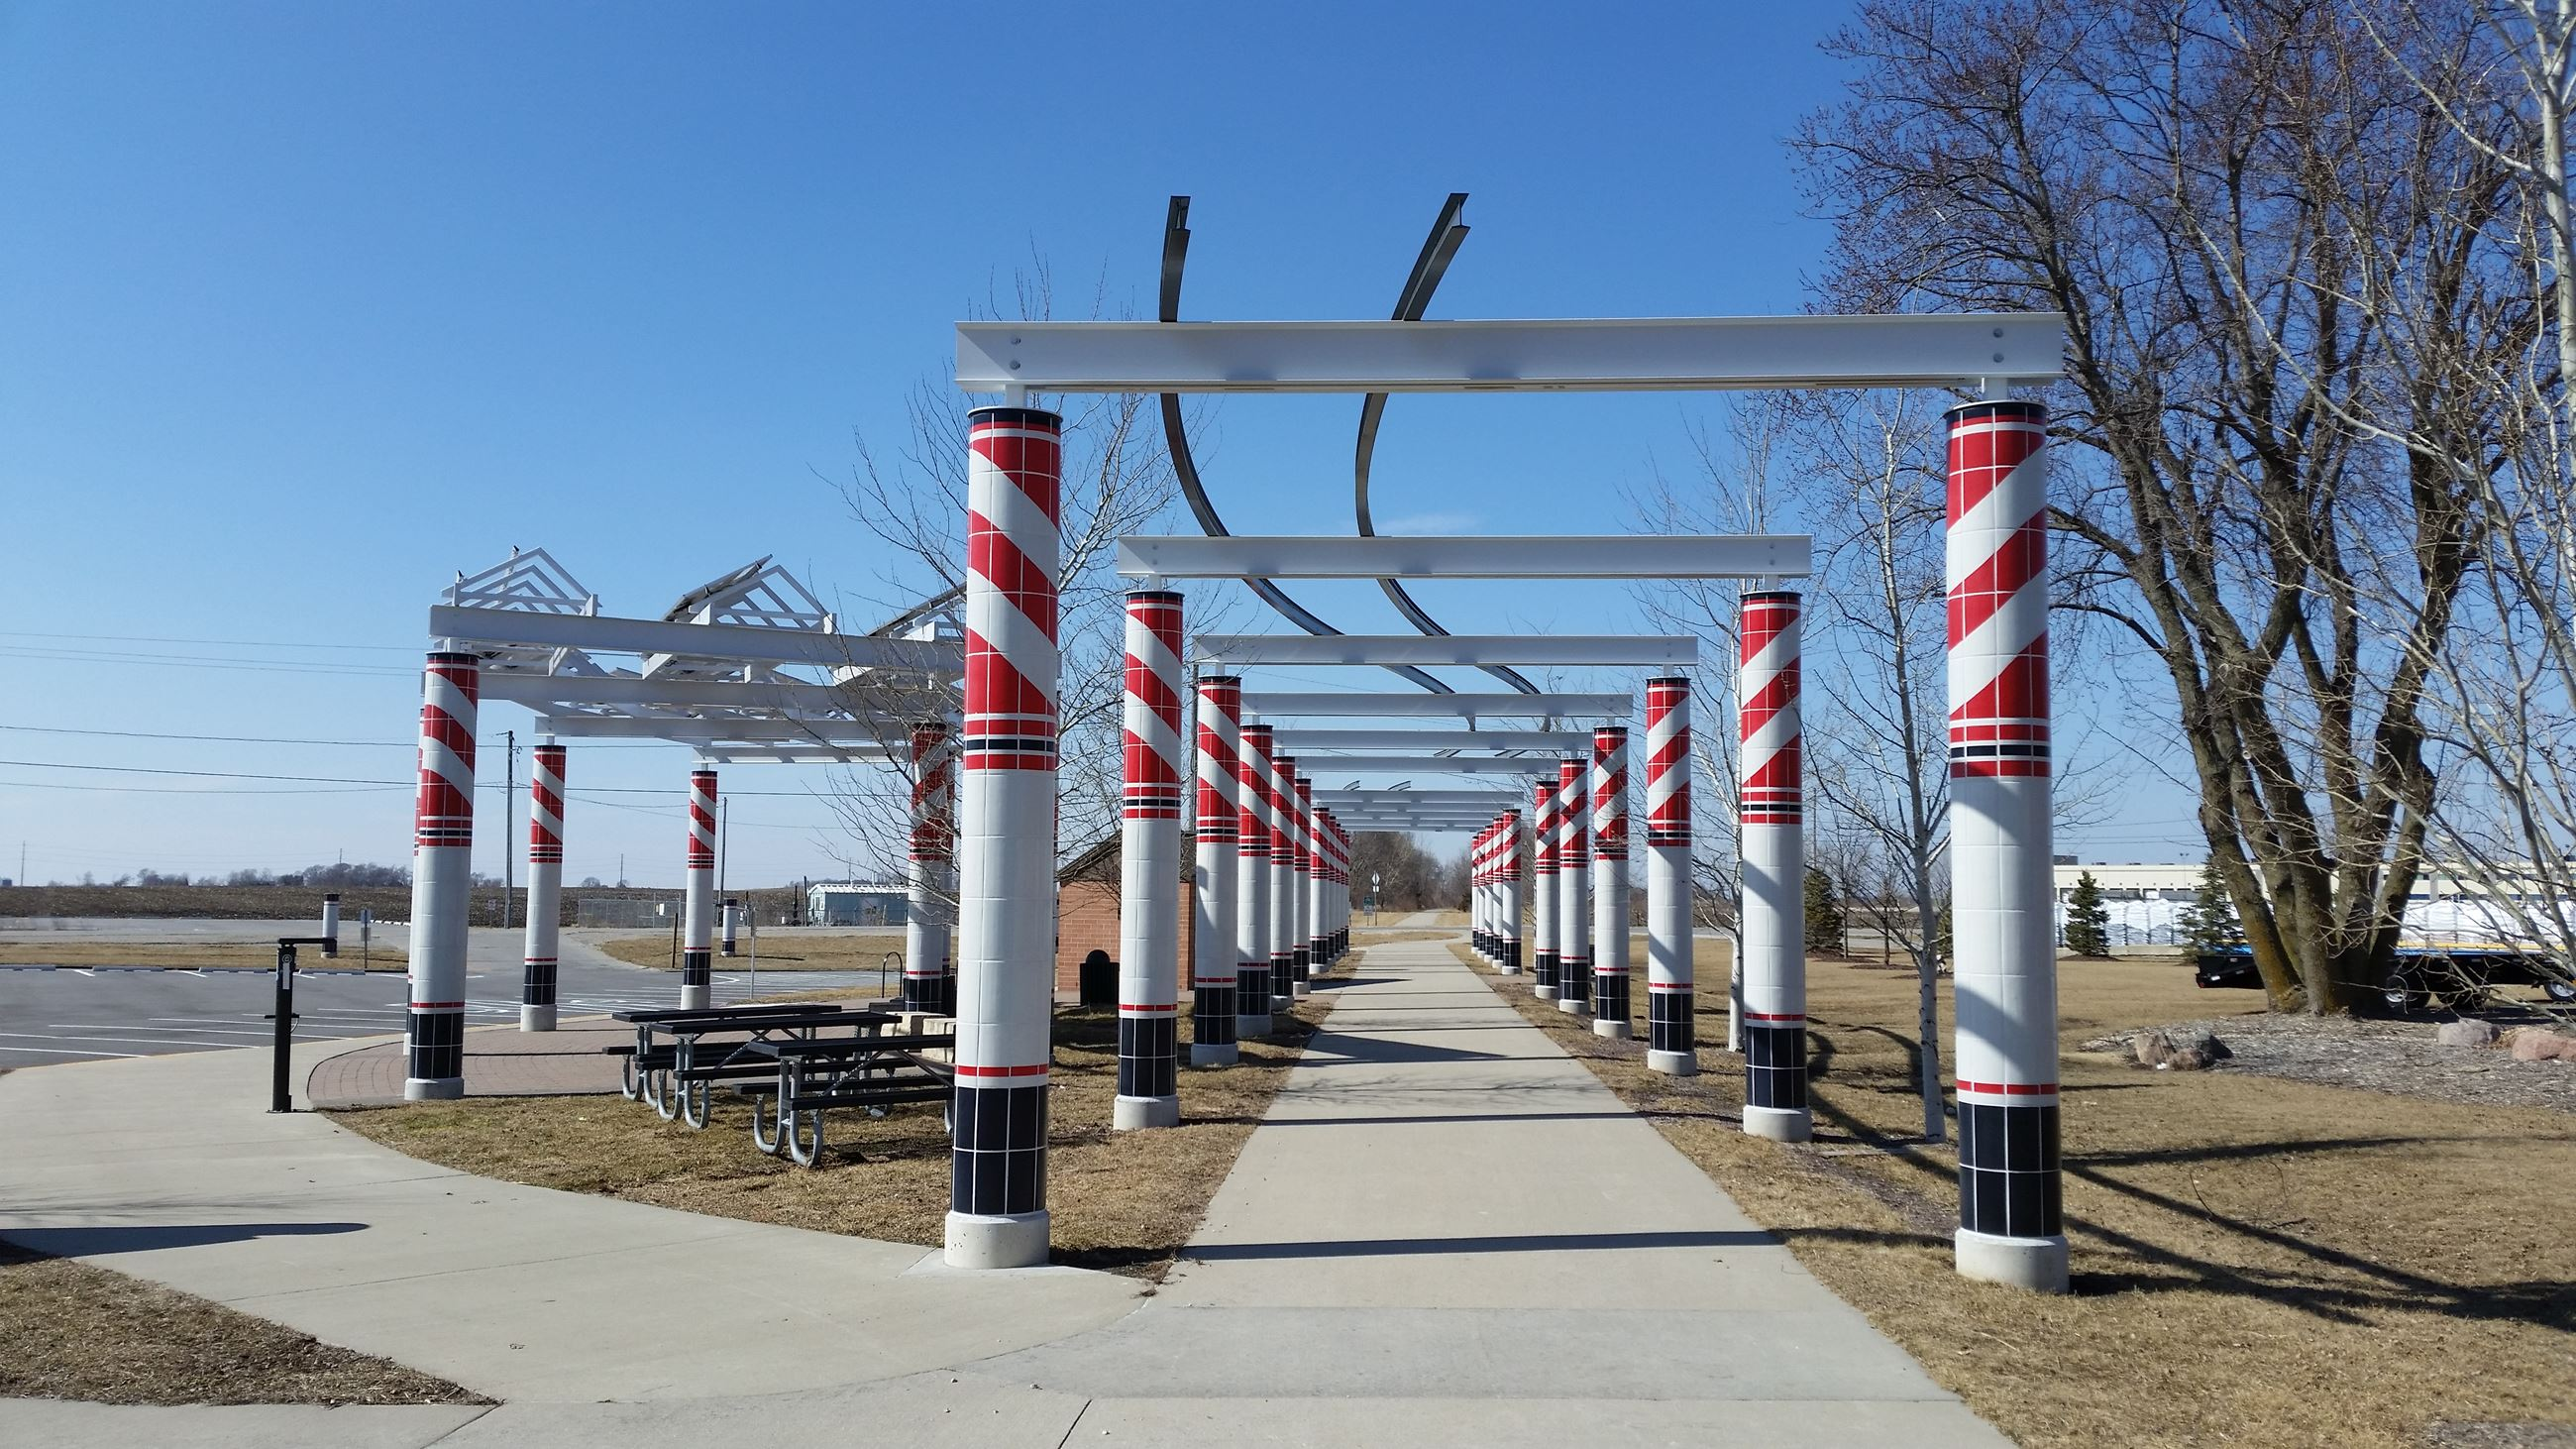 Pergola Image (UPDATED) - Ribbon Cutting Flyer 3.13.18